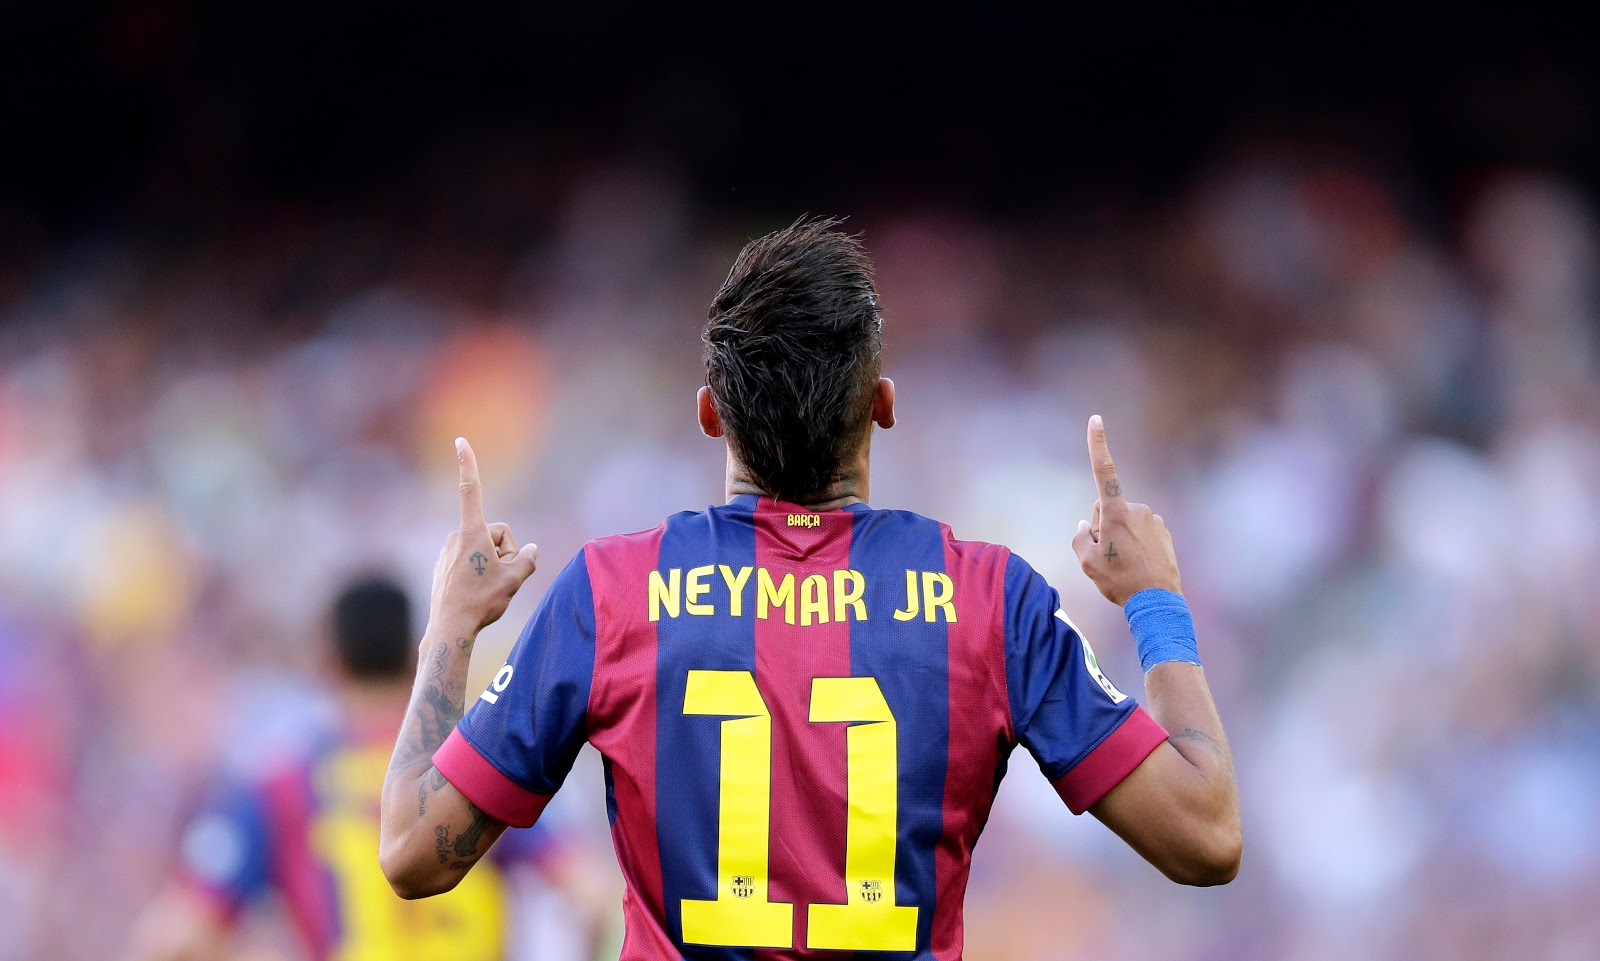 Neymar Jr Football Soccer Player Free Hd Raising Hands Up Mobile Desktop Bakground Download Pics